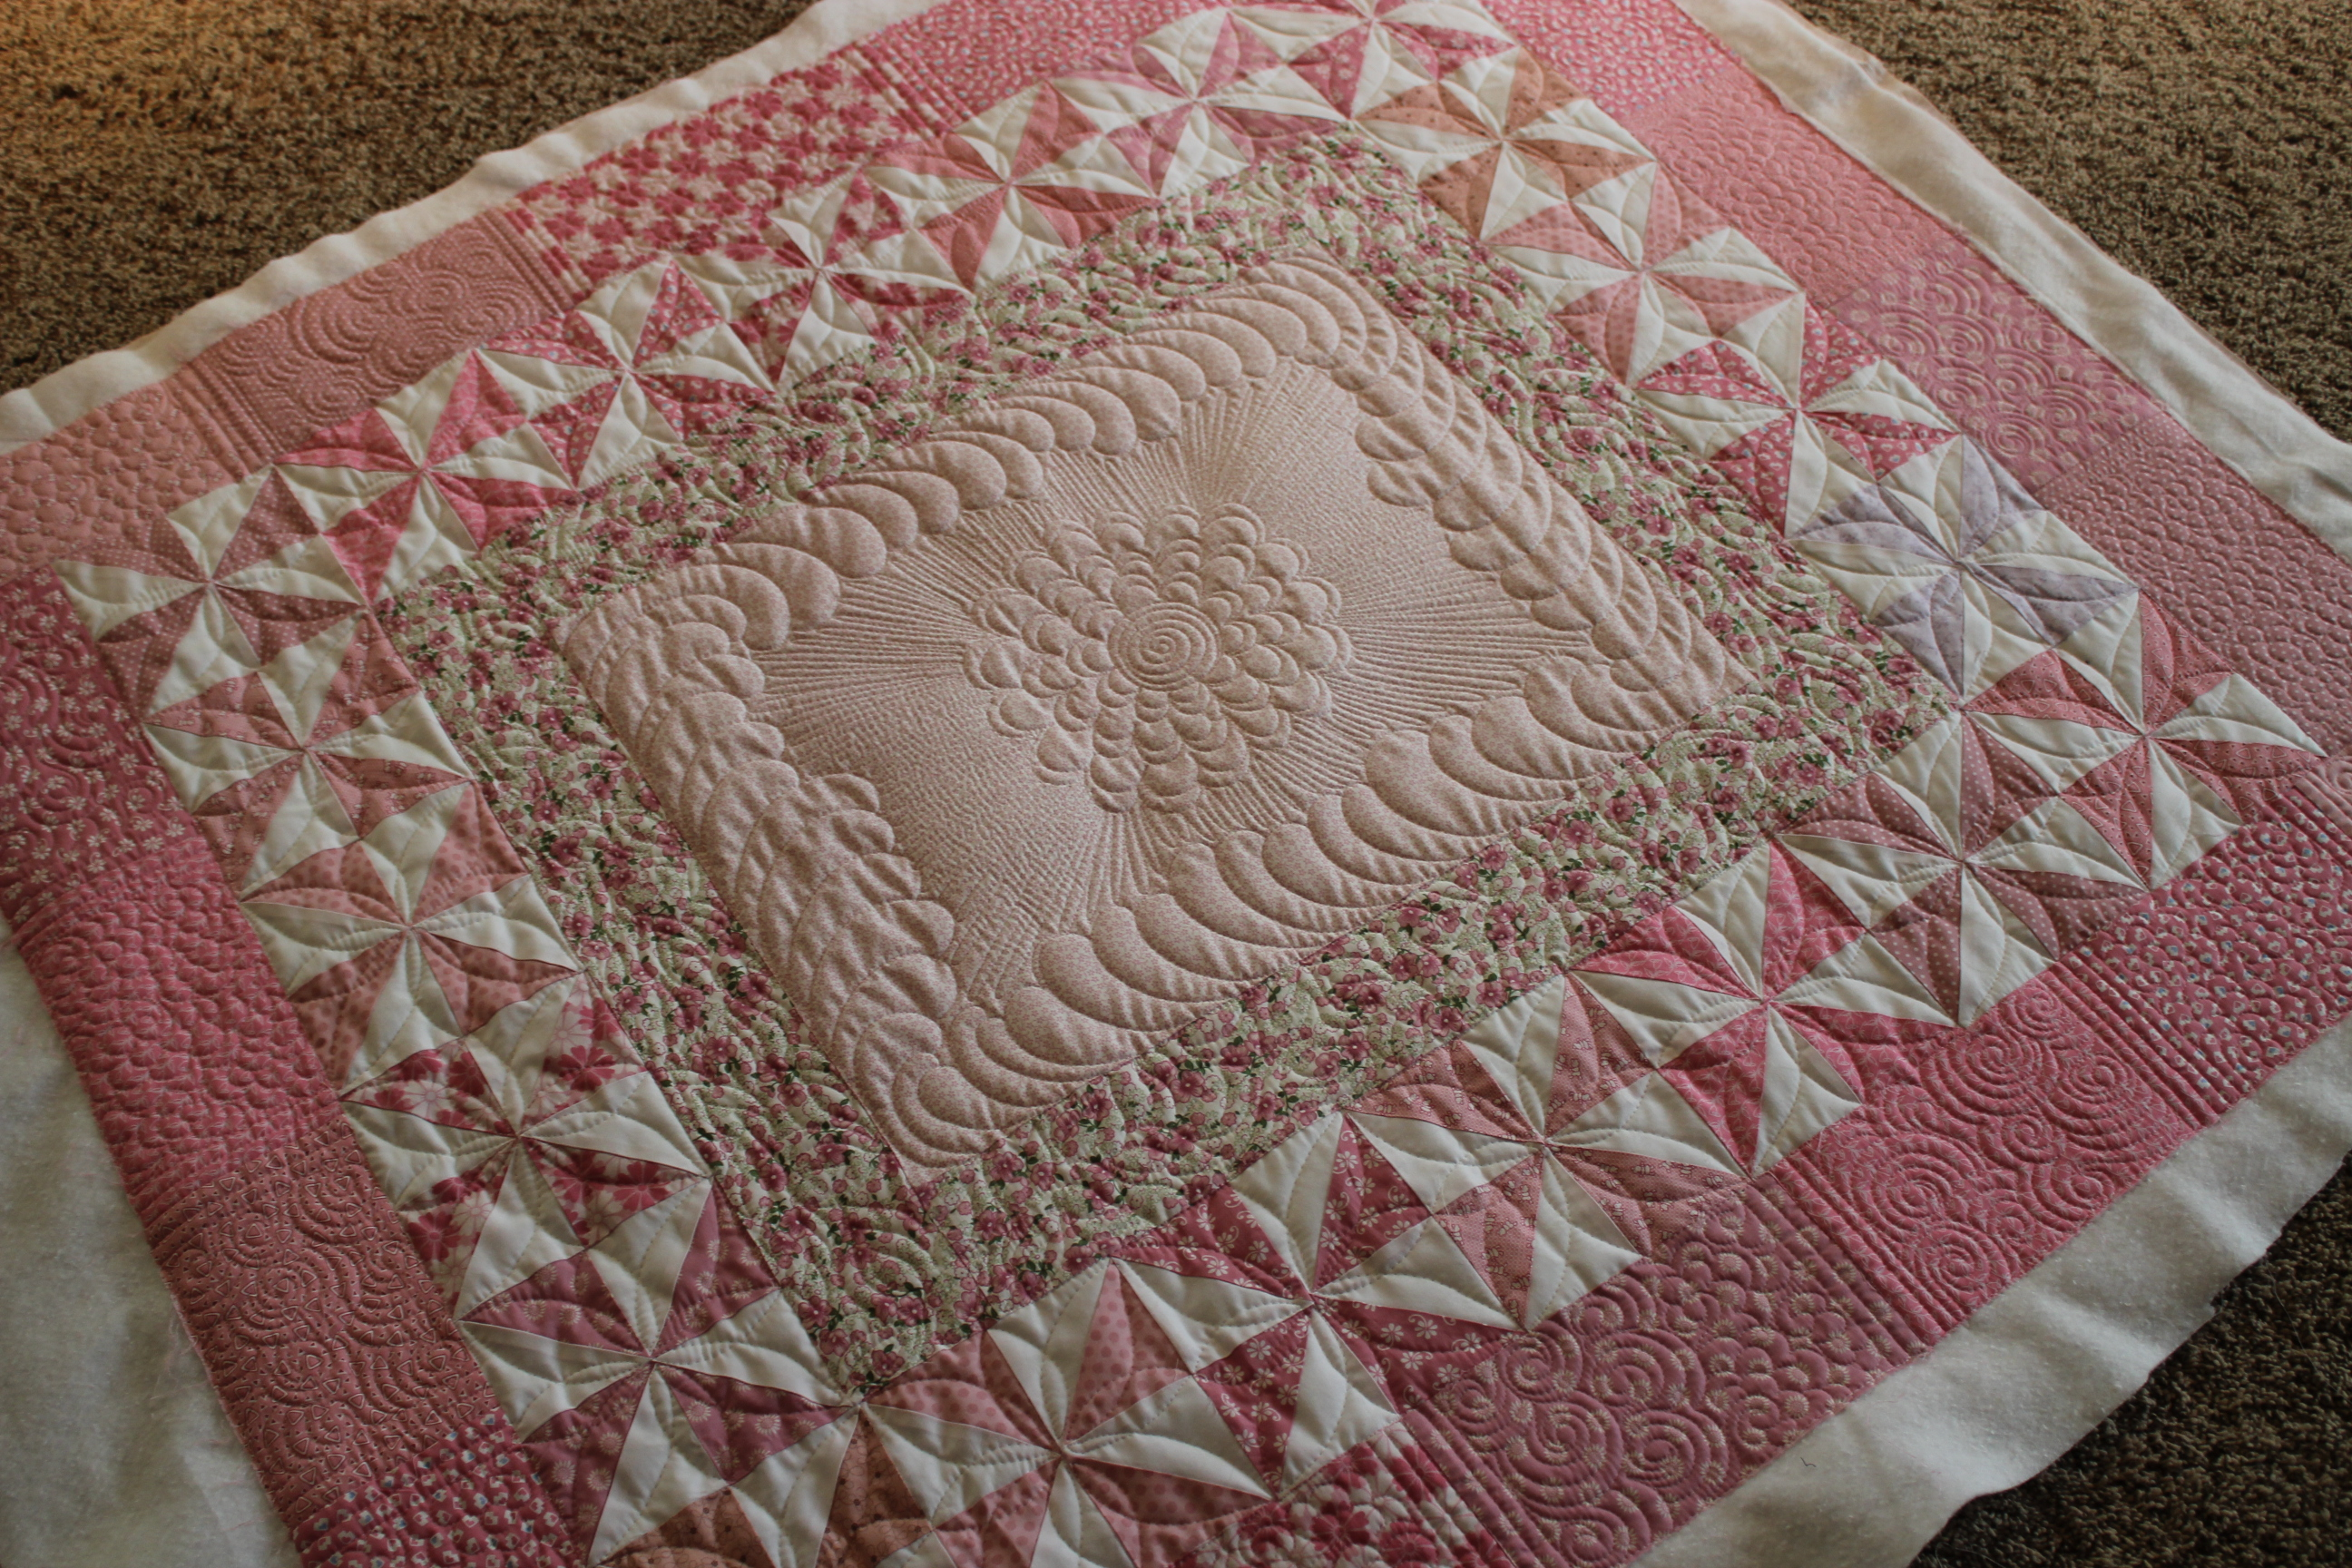 Quilting Is My Therapy Baby Quilt!! - Quilting Is My Therapy : images of baby quilts - Adamdwight.com